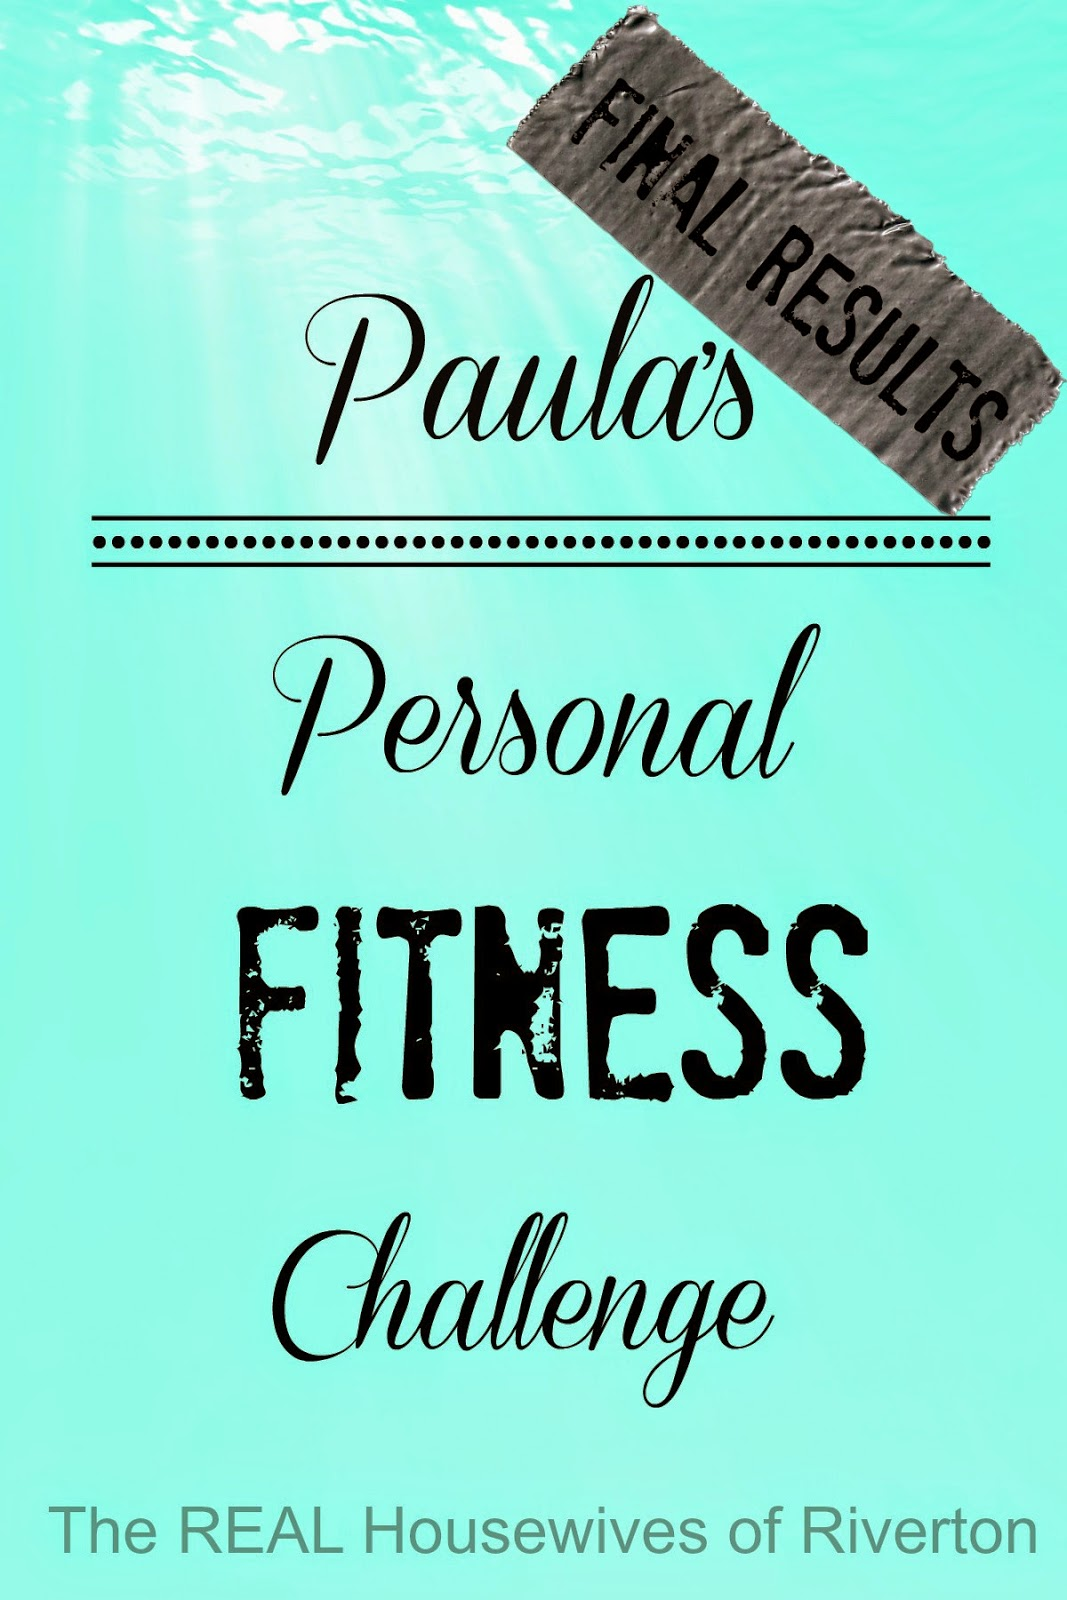 Paula's Personal Fitness Challenge – FINAL RESULTS